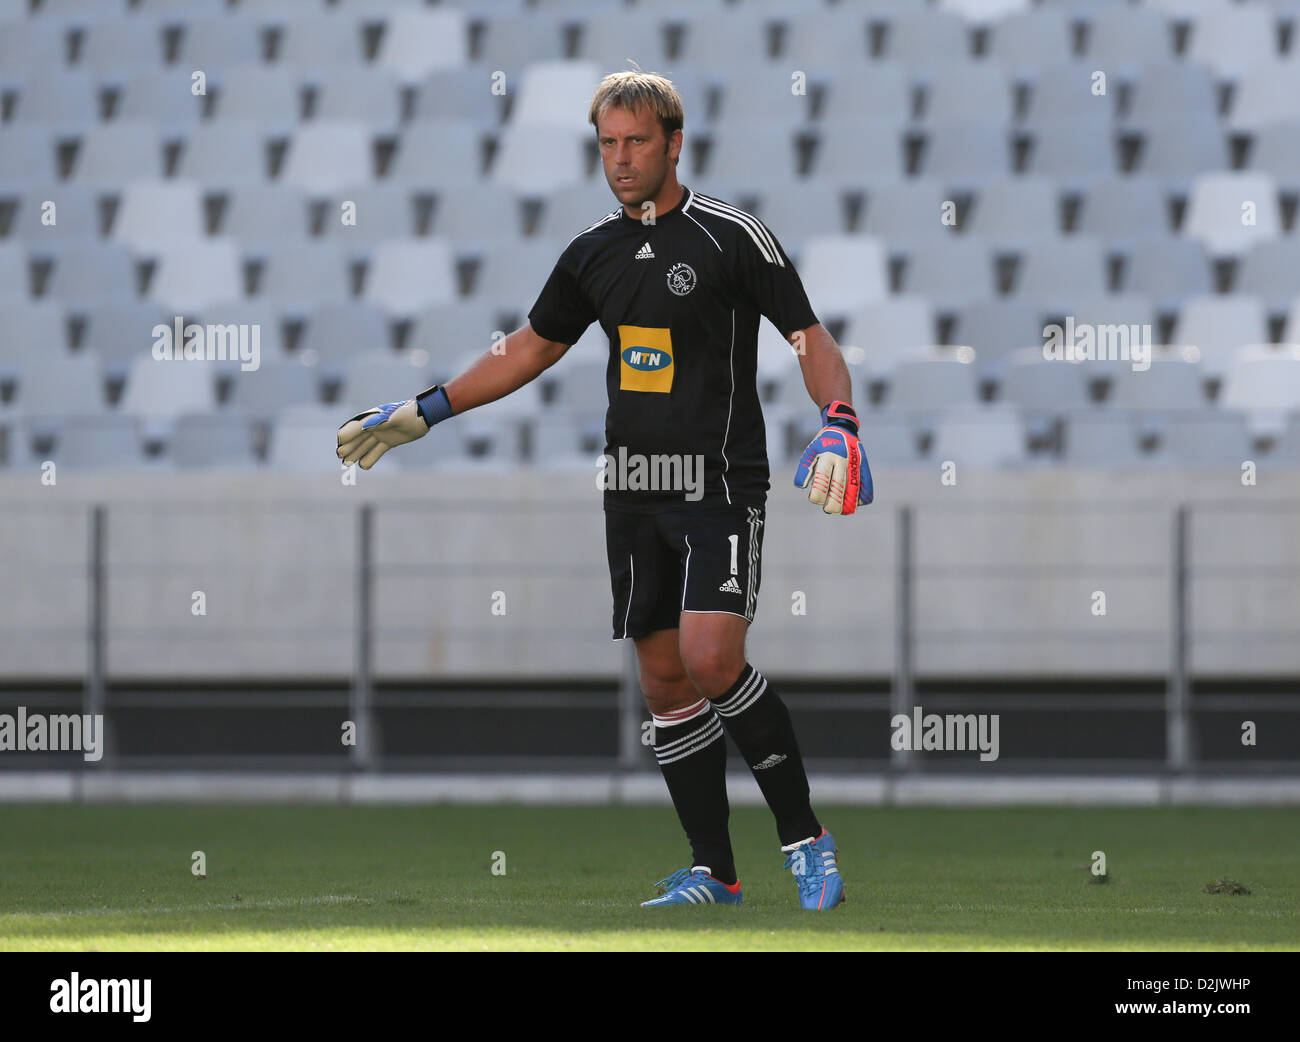 CAPE TOWN, South Africa - Saturday 26 January 2013, Sander Westerfield (gk) of Ajax Cape Town during the soccer/football - Stock Image